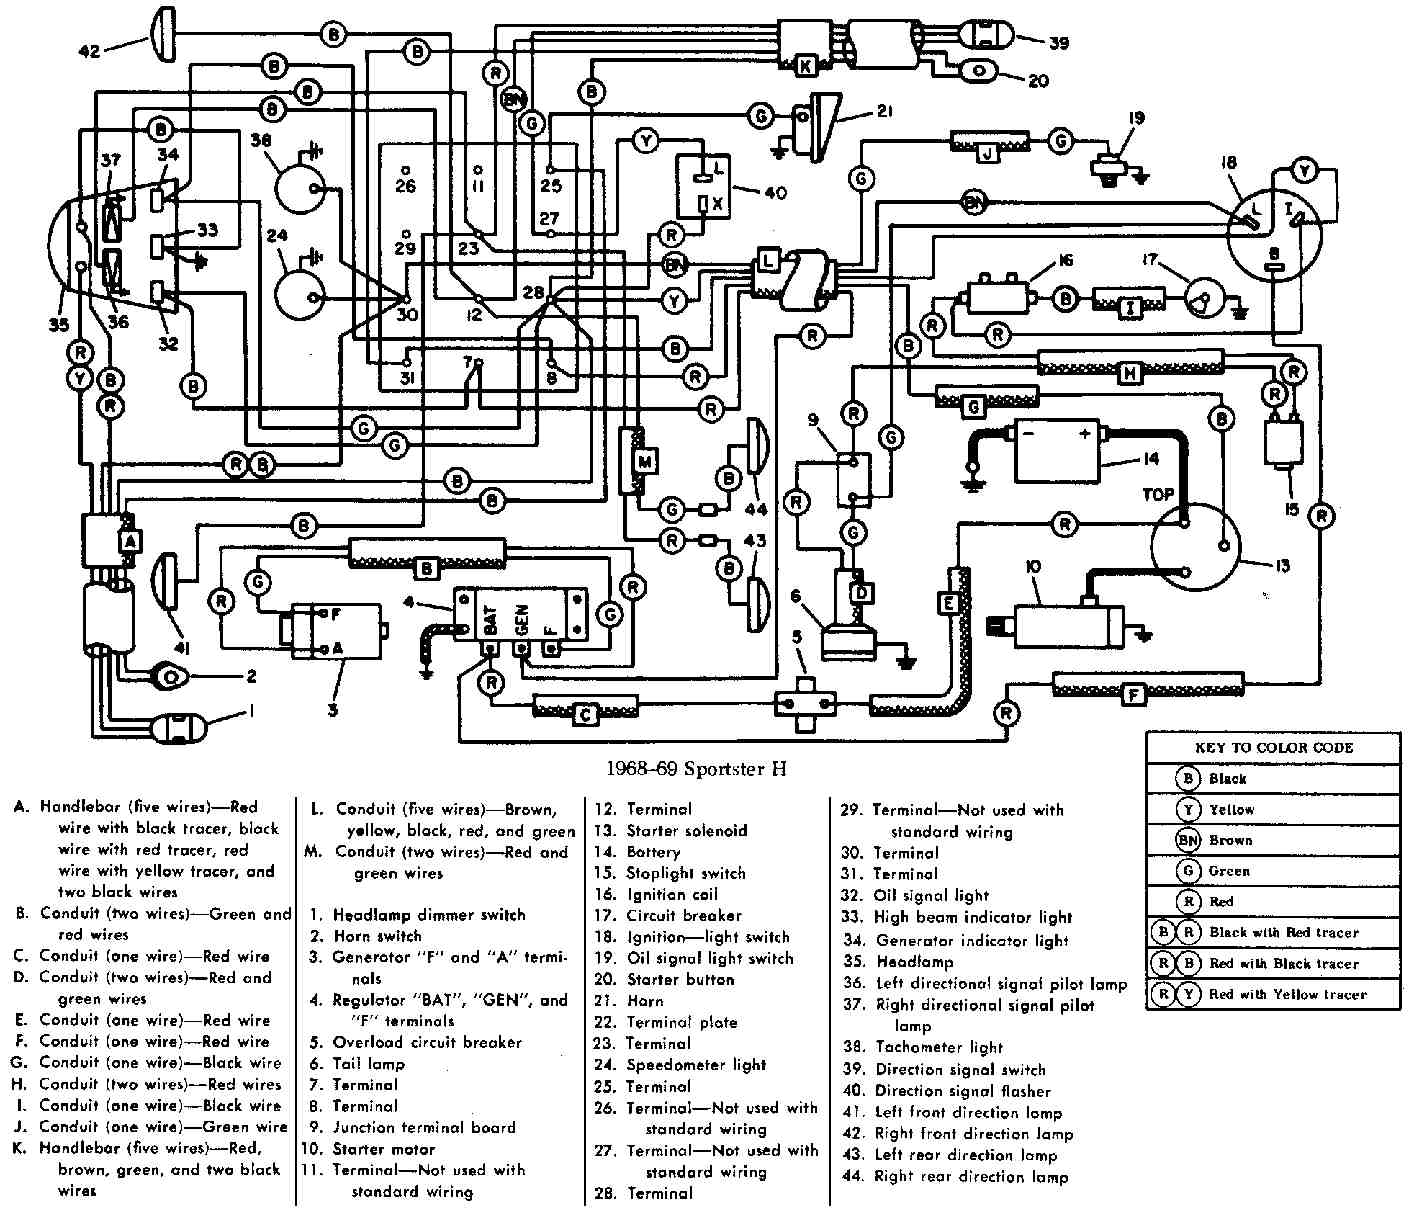 1967 Mustang Wiring And Vacuum Diagrams as well 1967 Mustang Wiring And Vacuum Diagrams together with Schematics h also 1968 Mustang Wiring Diagram Vacuum Schematics likewise Chevy S 10 Steering Column Wiring Diagram. on 1965 mustang wiring harness diagram